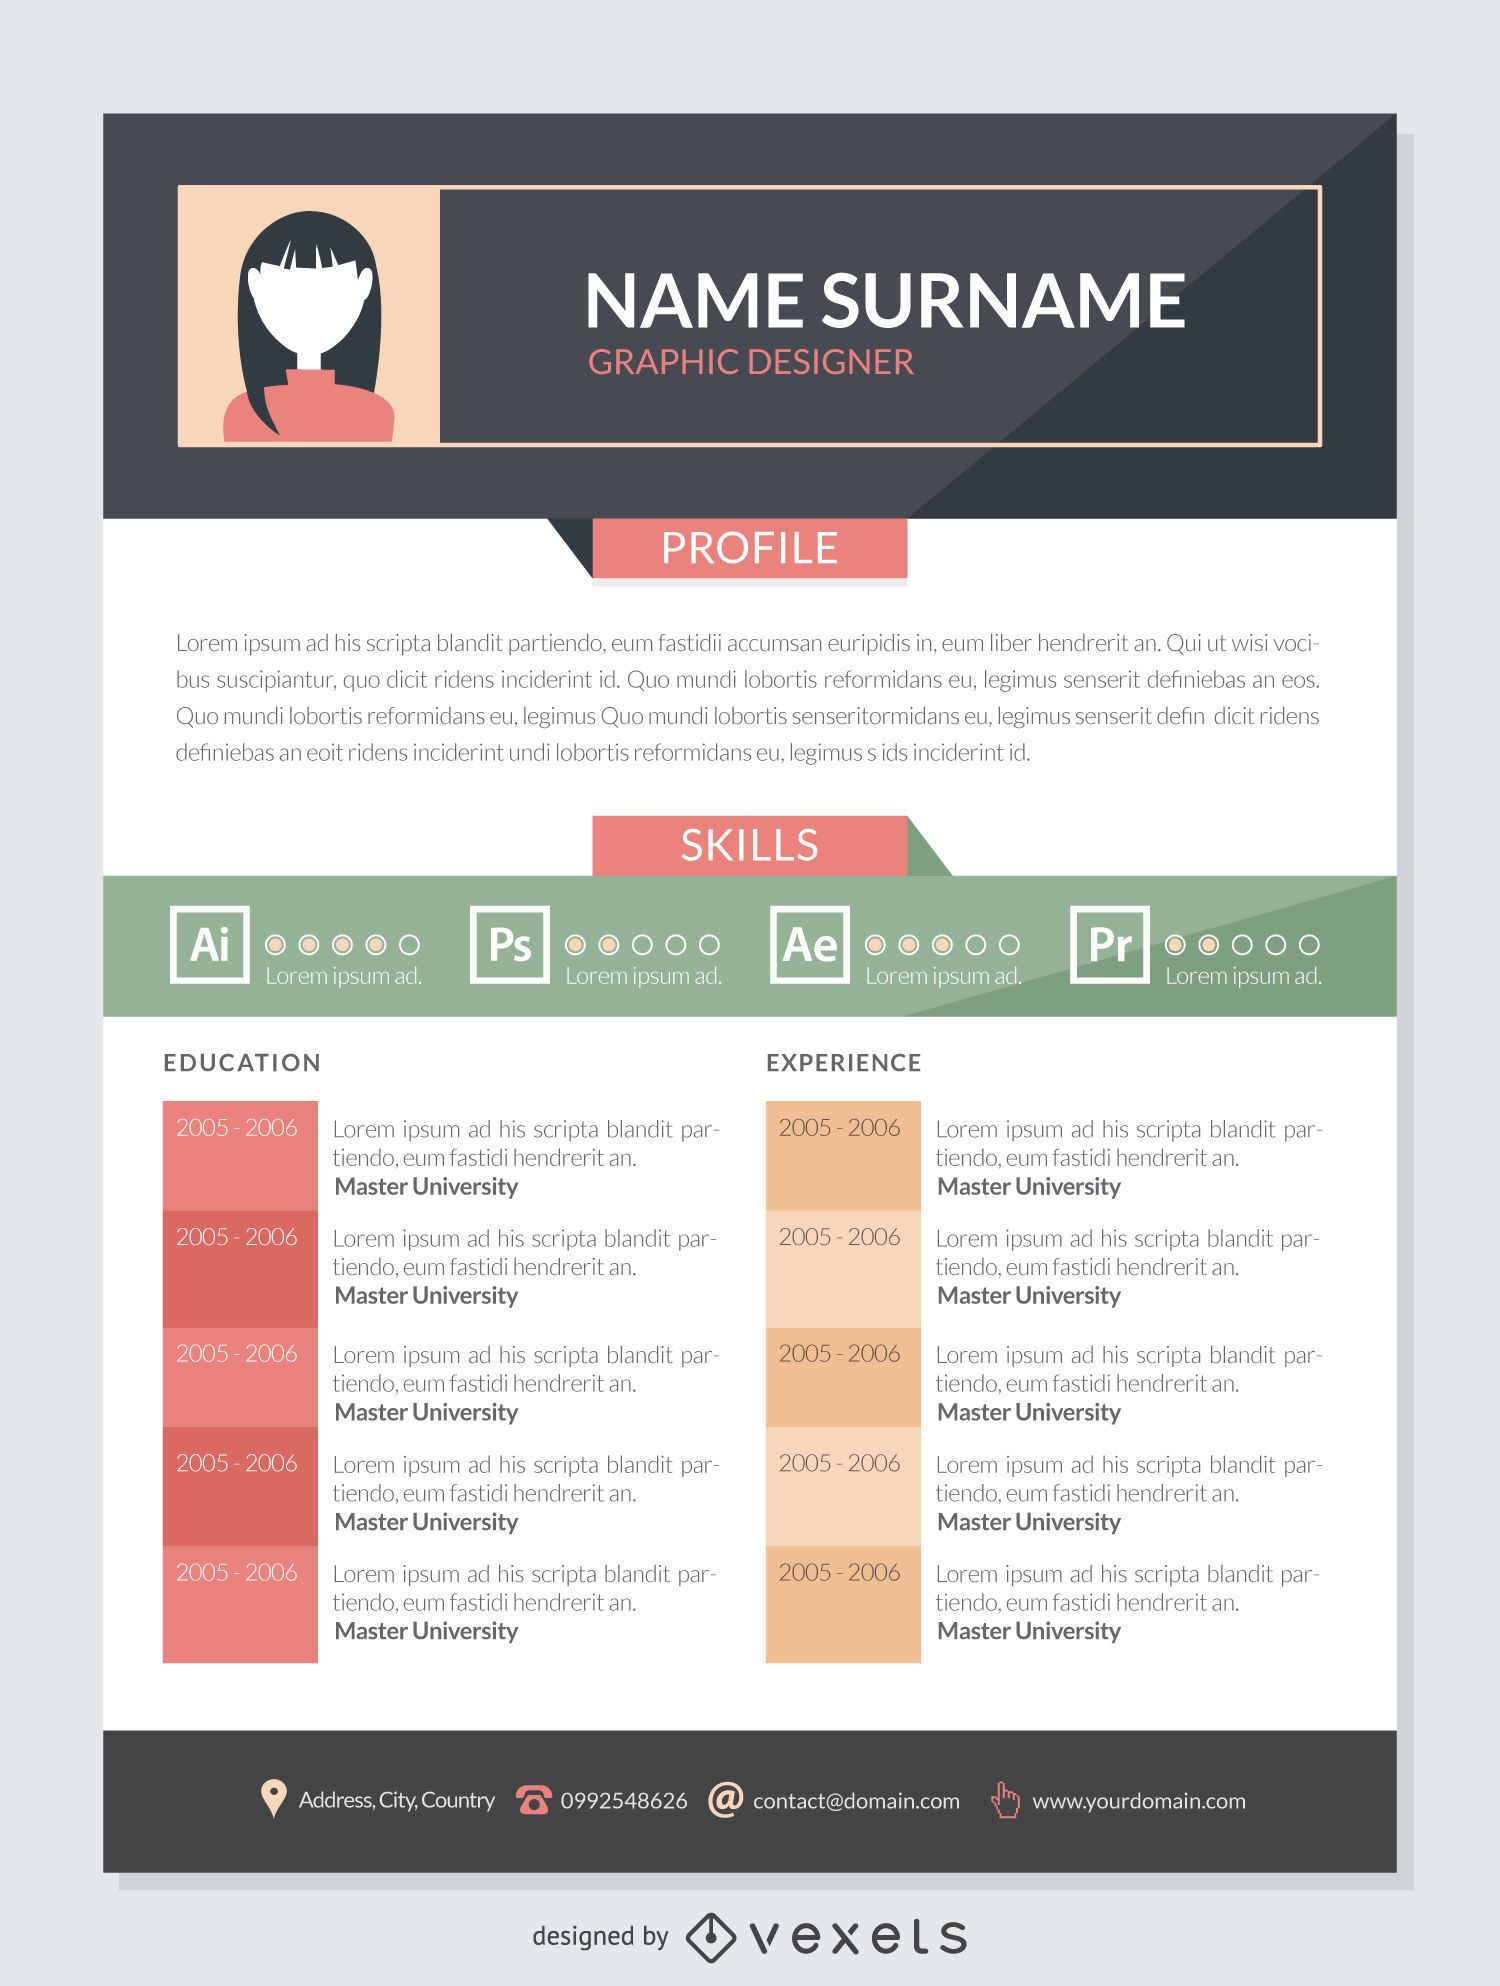 Graphic Designer Resume Mockup Template  Resume Graphic Designer